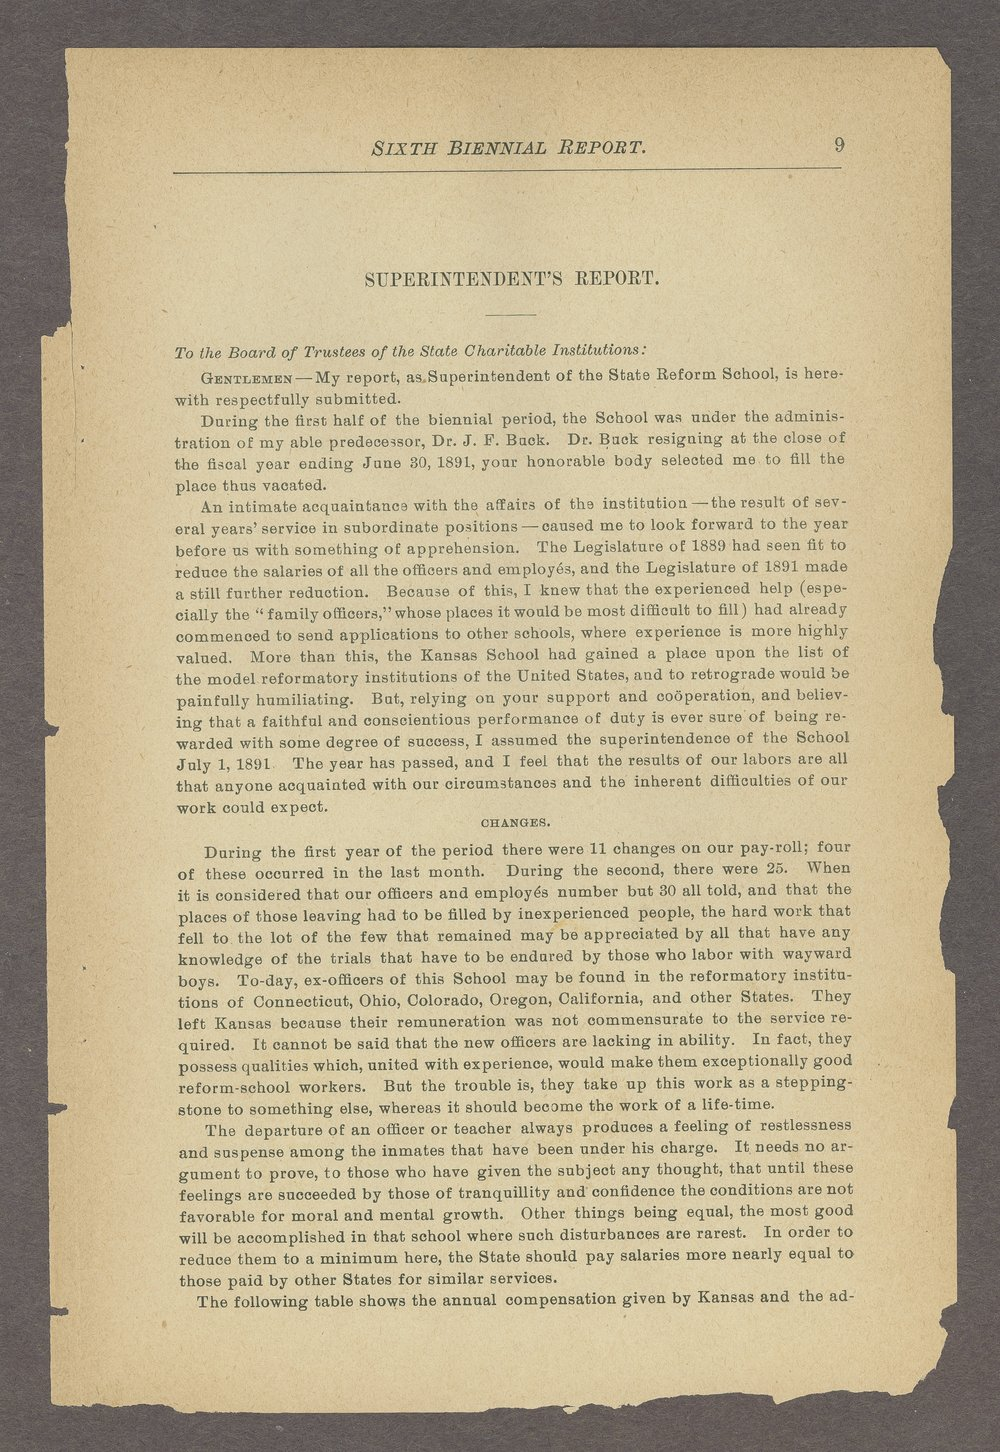 Biennial report of the State Reform School, 1892 - 9